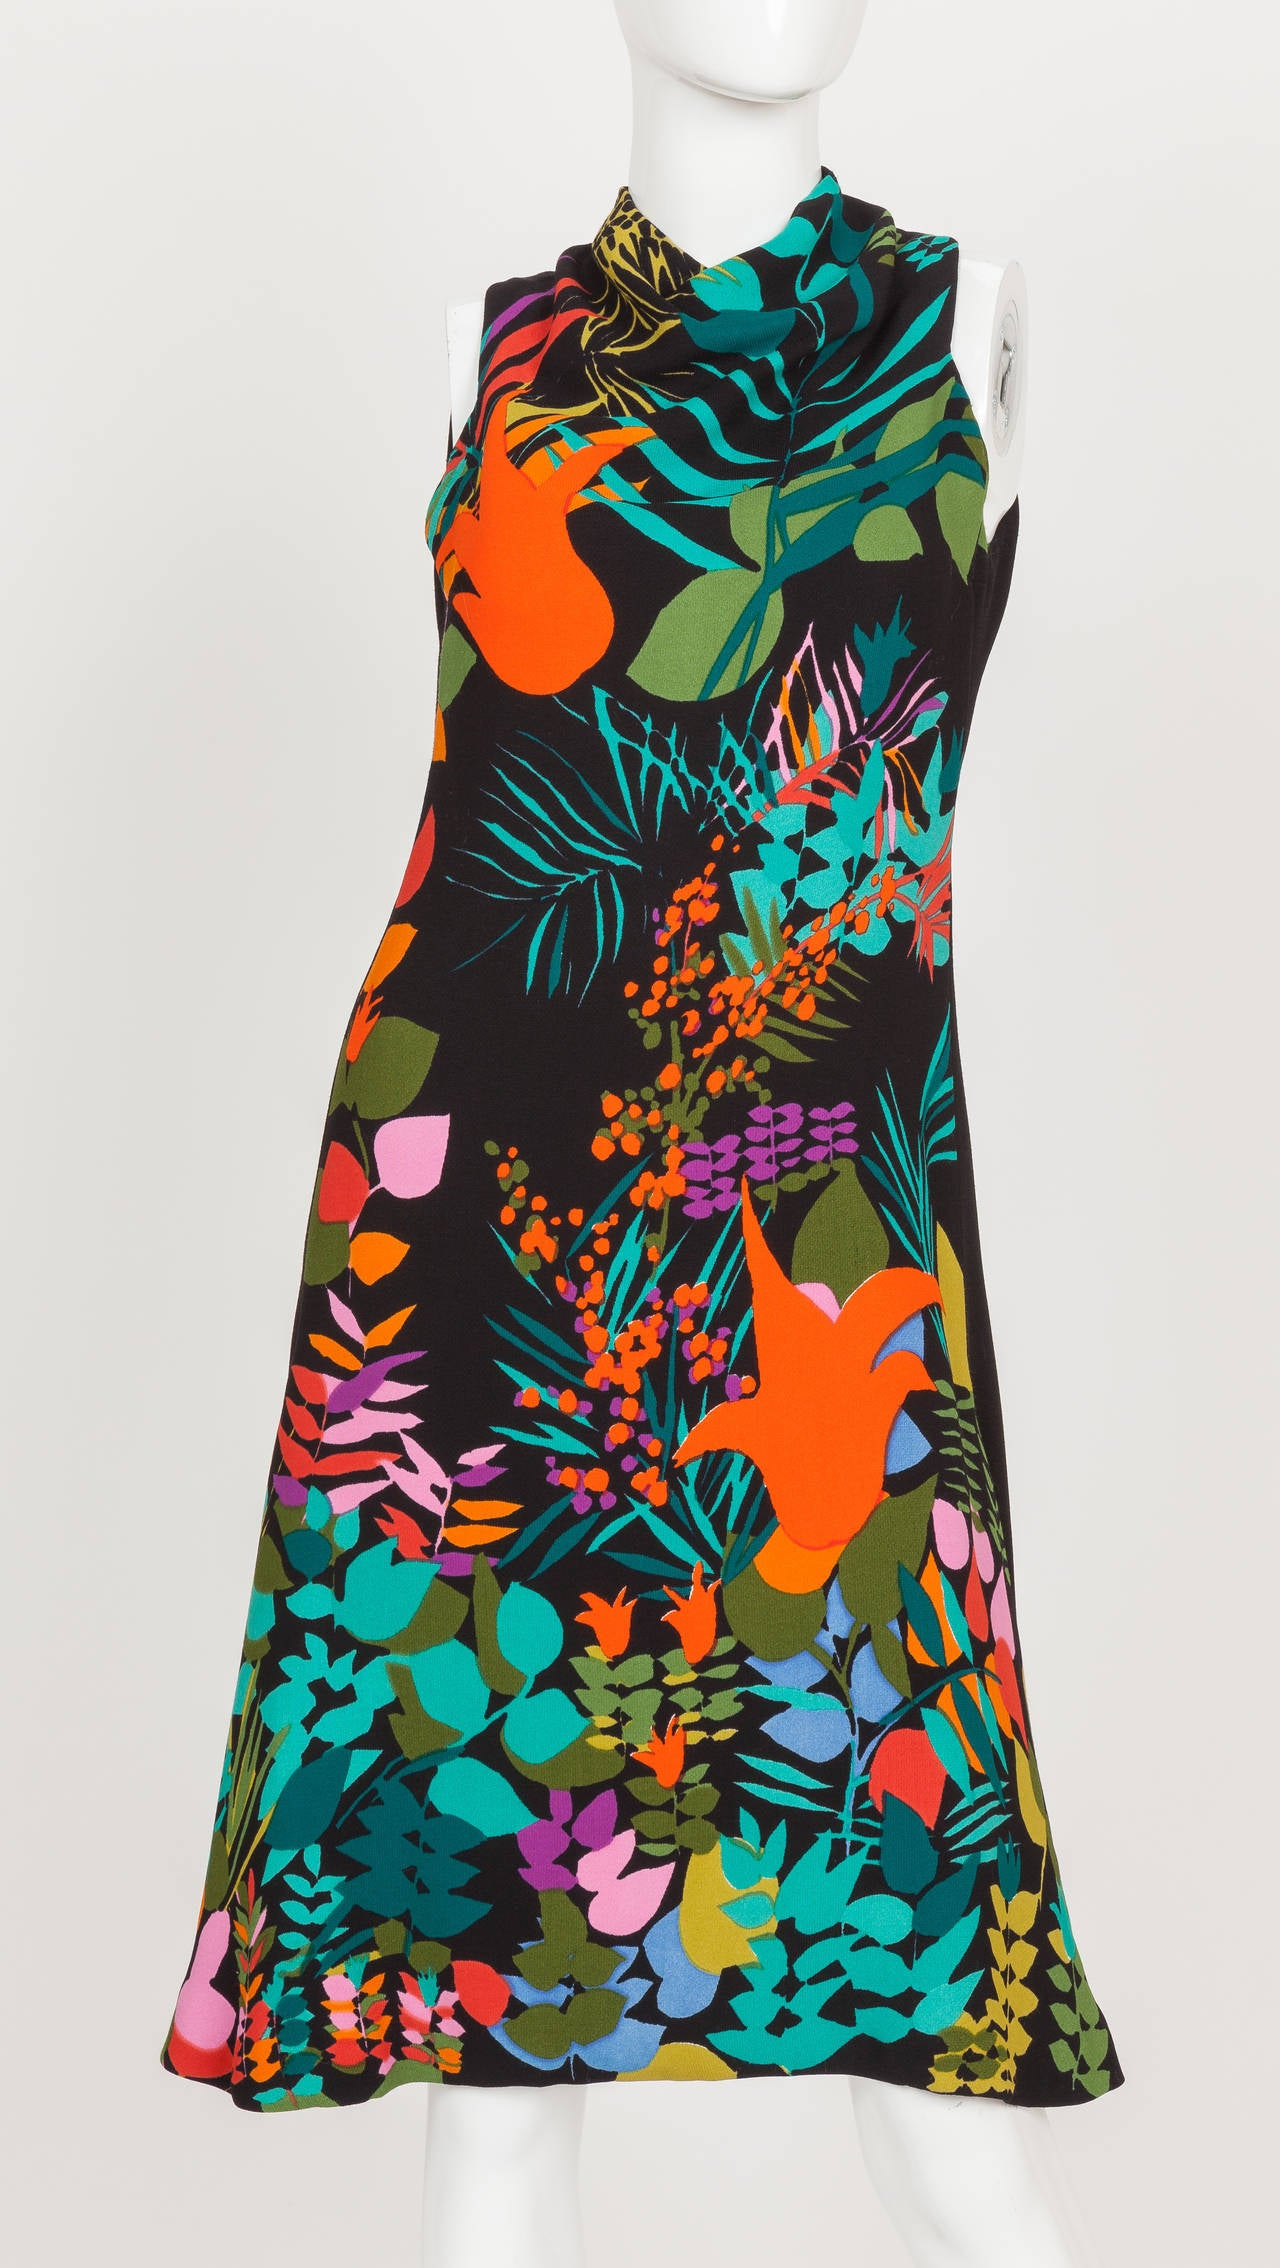 A Pauline Trigere sleeveless cocktail or day dress from the late 1970's, early 1980's featuring a floral print on black background with mini cowl-neckline. This A-line dress with flounced hem is lined with silk and has two small round weights built